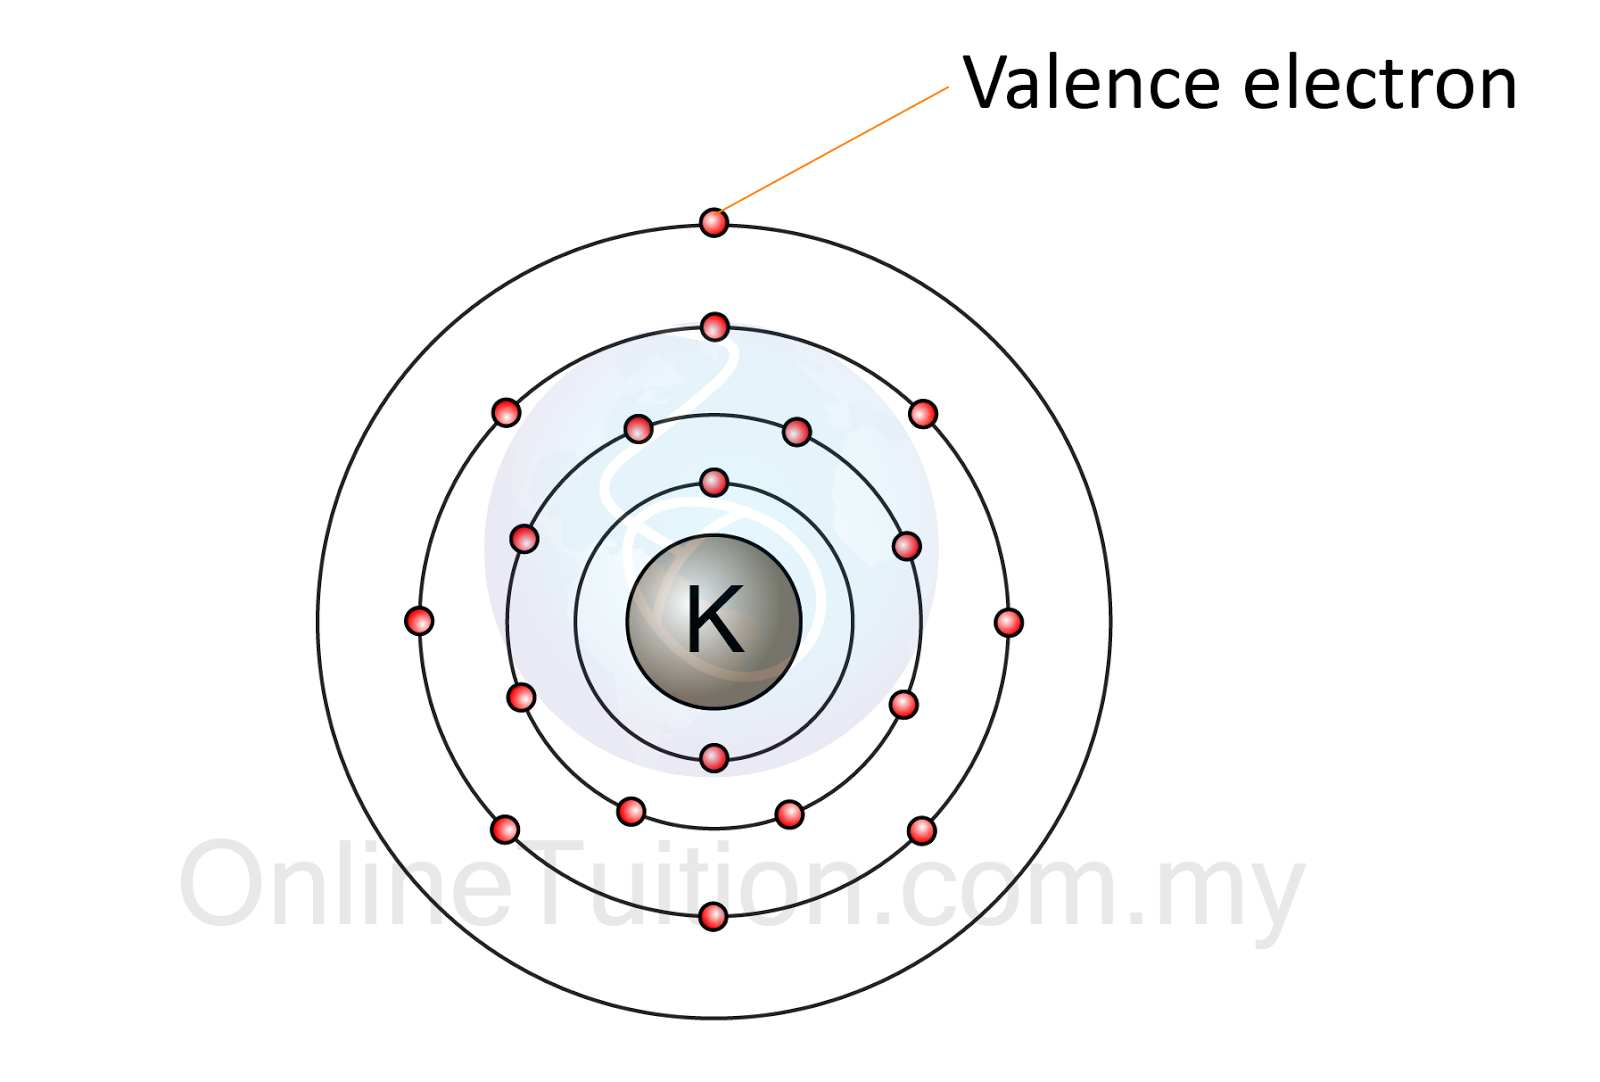 gizmo atom and valence electrons Chlorine cl 7 1- 8 carbon c 6 2- 8 silicon si 4 4+4- 8 make a rule : if you knew  the number of valence electrons in a nonmetal atom, how would you determine.